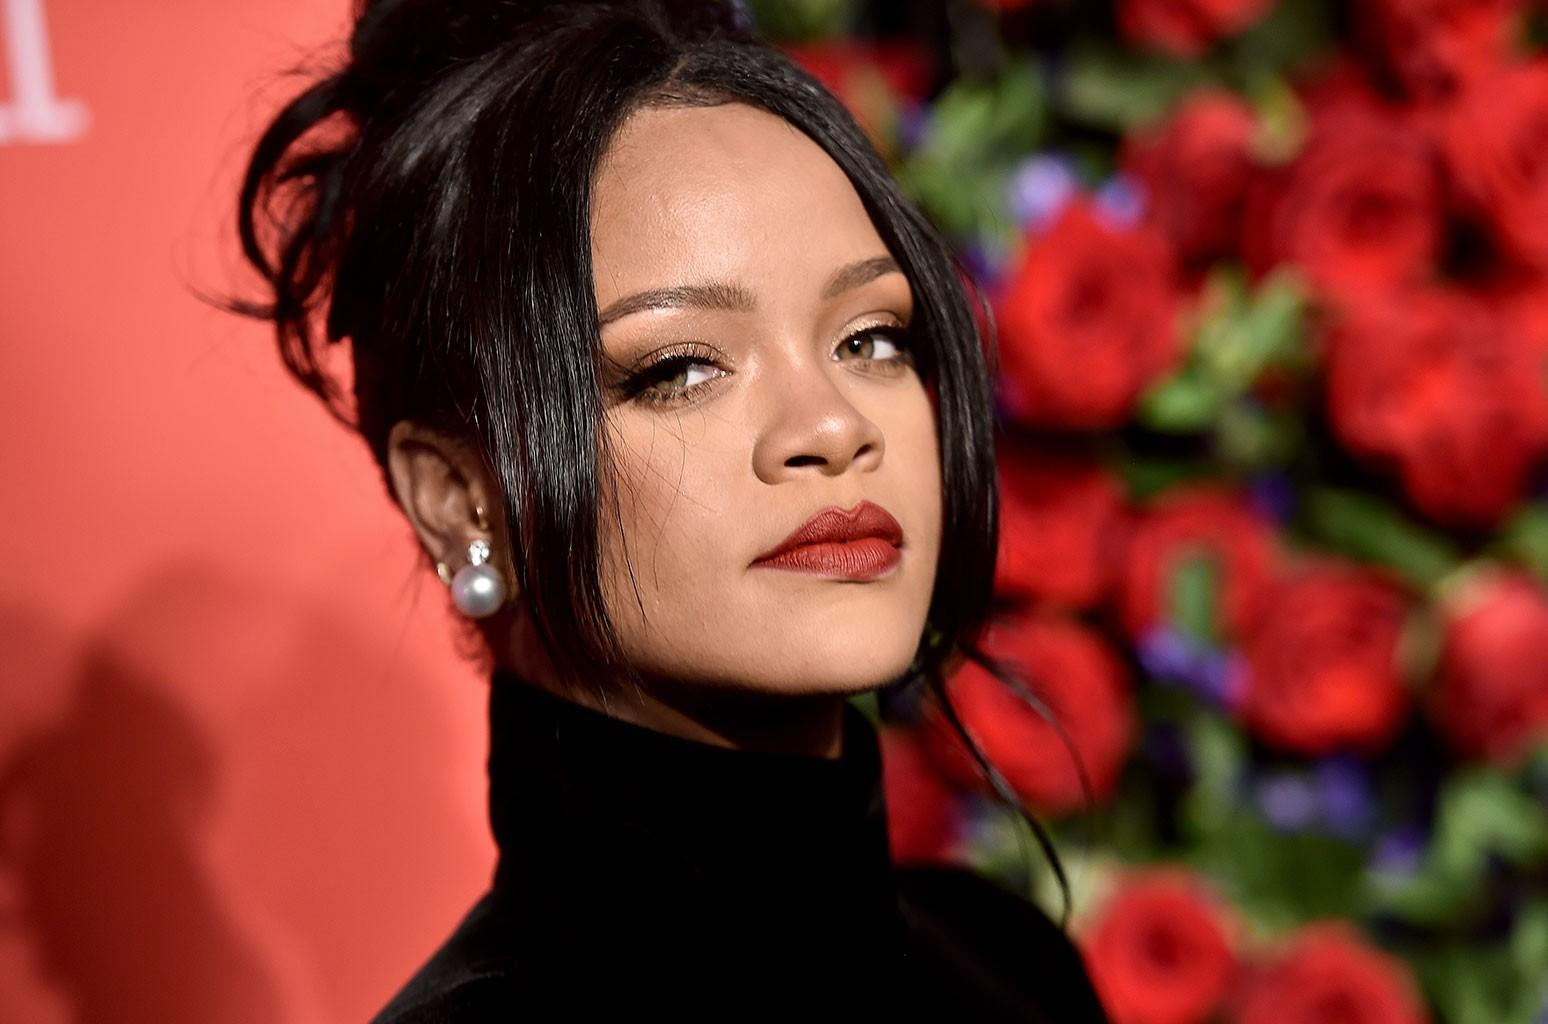 Rihanna Drops Her Clothes And Shows Out For The 'Gram - See The Photo That Has Fans Losing Their Minds